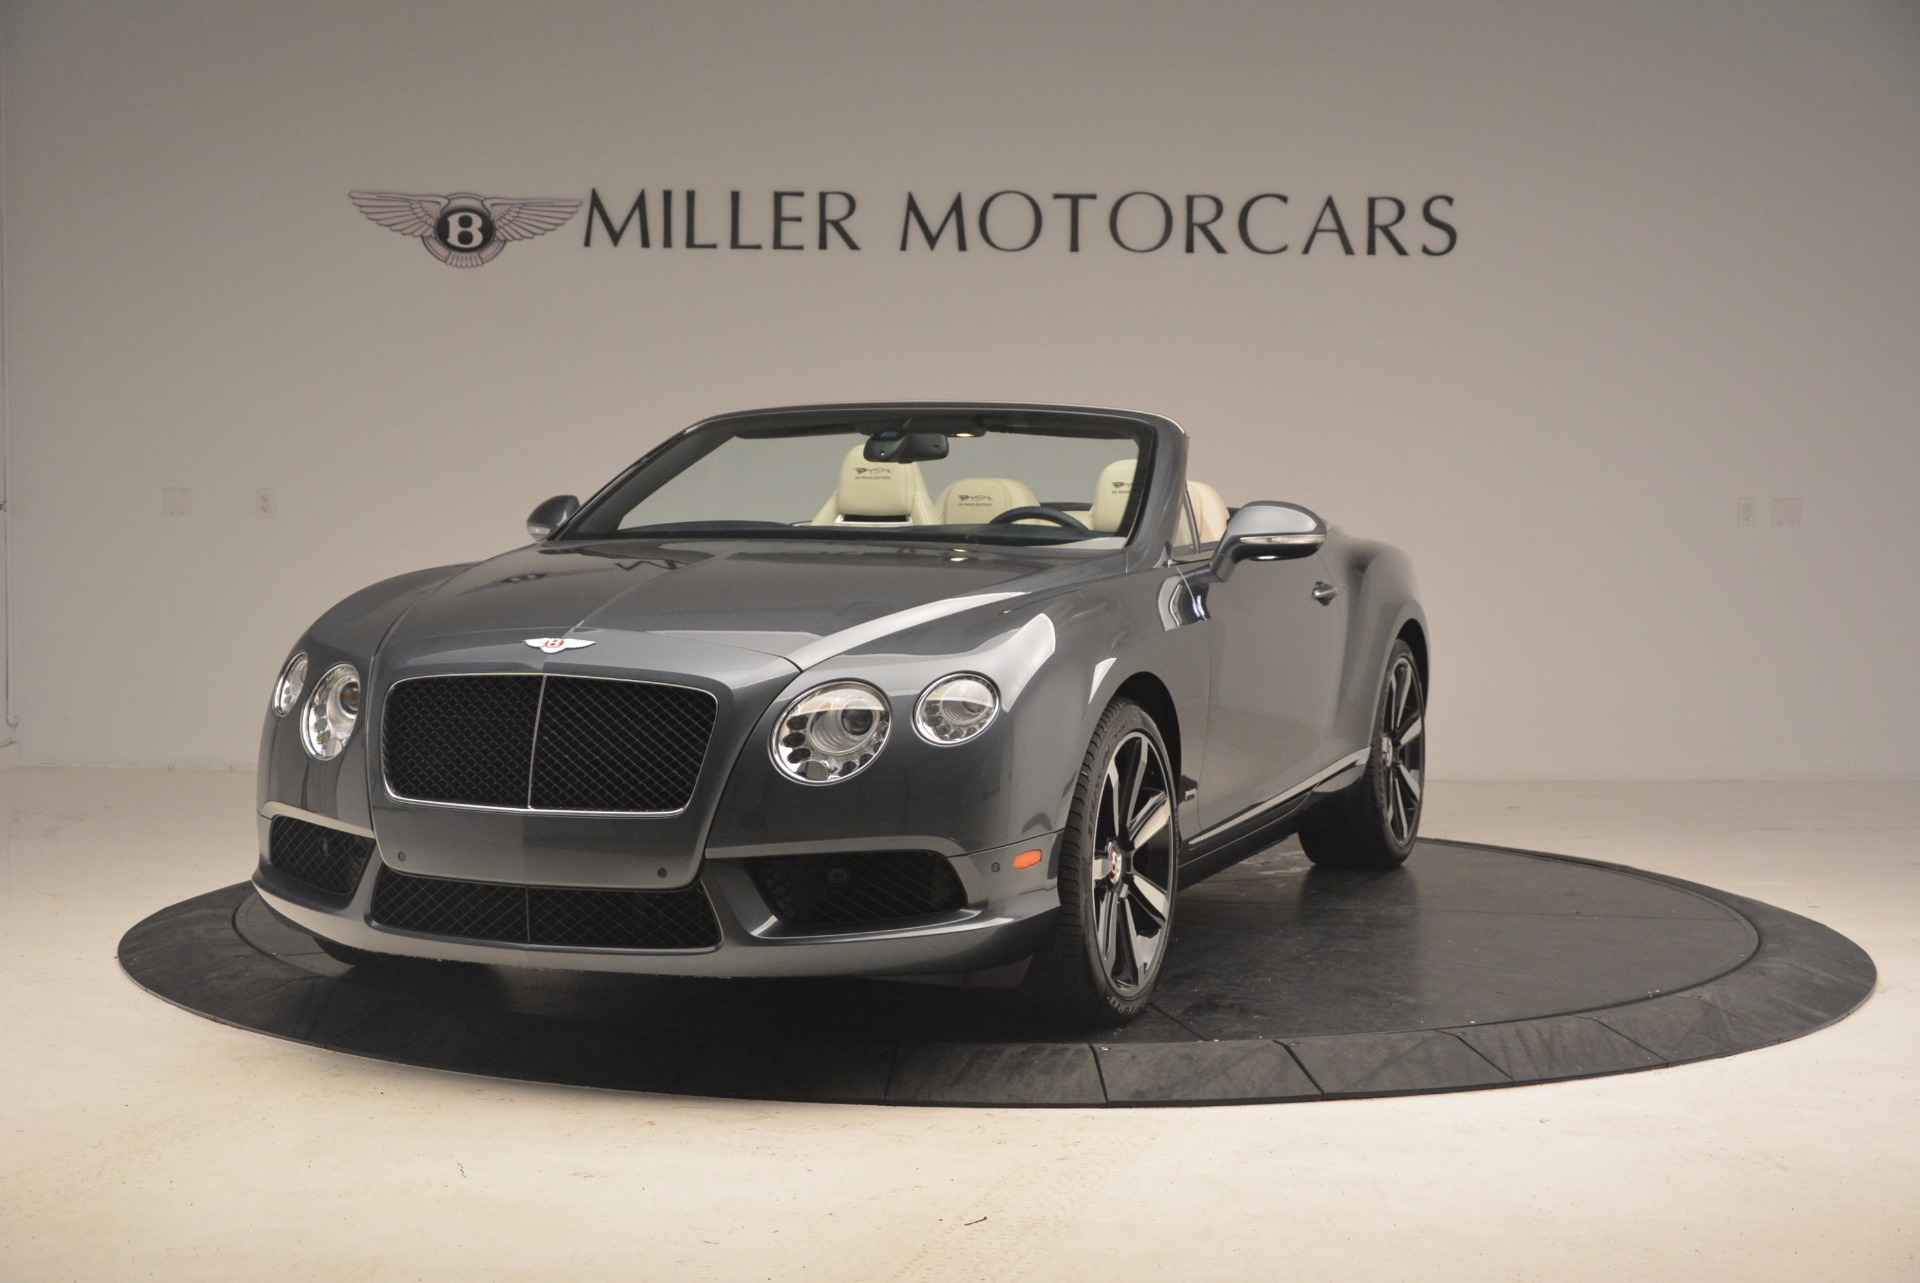 Used 2013 Bentley Continental GT V8 Le Mans Edition, 1 of 48 for sale Sold at McLaren Greenwich in Greenwich CT 06830 1